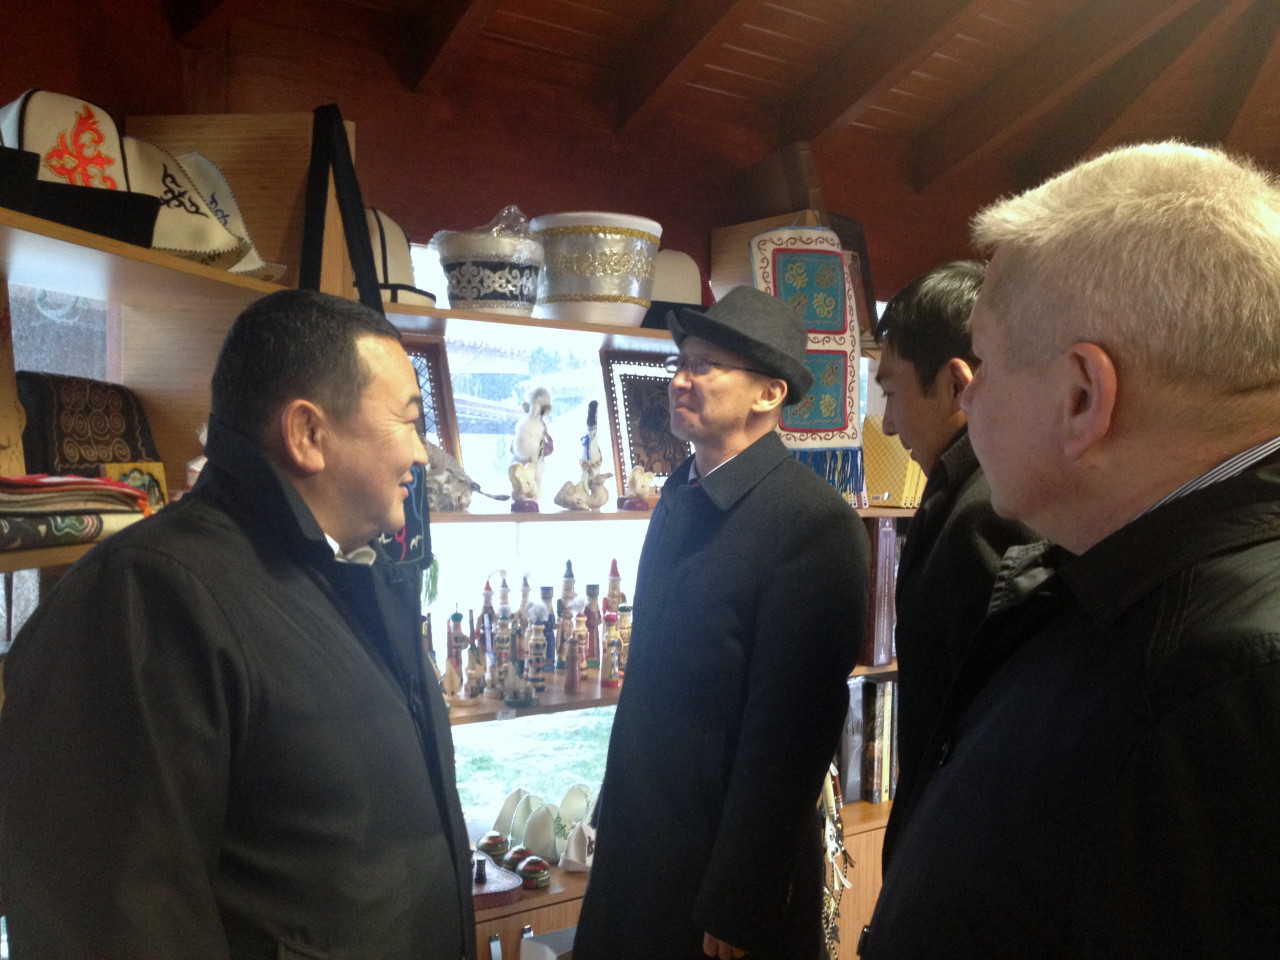 Visit from the Deputy Minister Chakiev to Culture Co. Galeri - 13. Resim